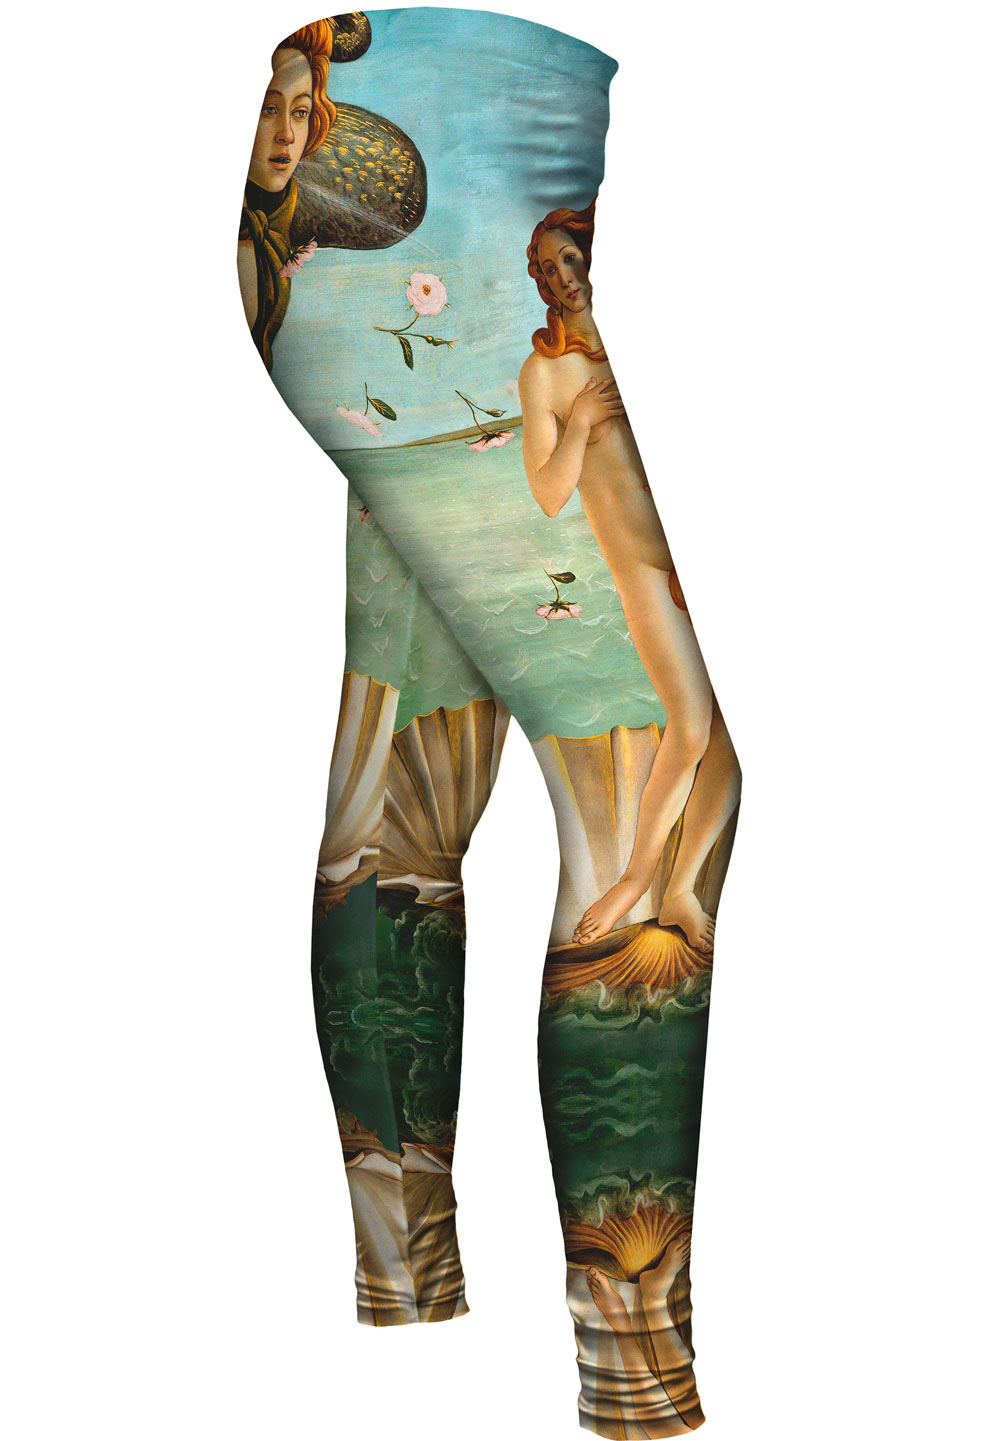 Shop for customizable Sandro Botticelli clothing on Zazzle. Check out our t-shirts, polo shirts, hoodies, & more great items. Start browsing today!